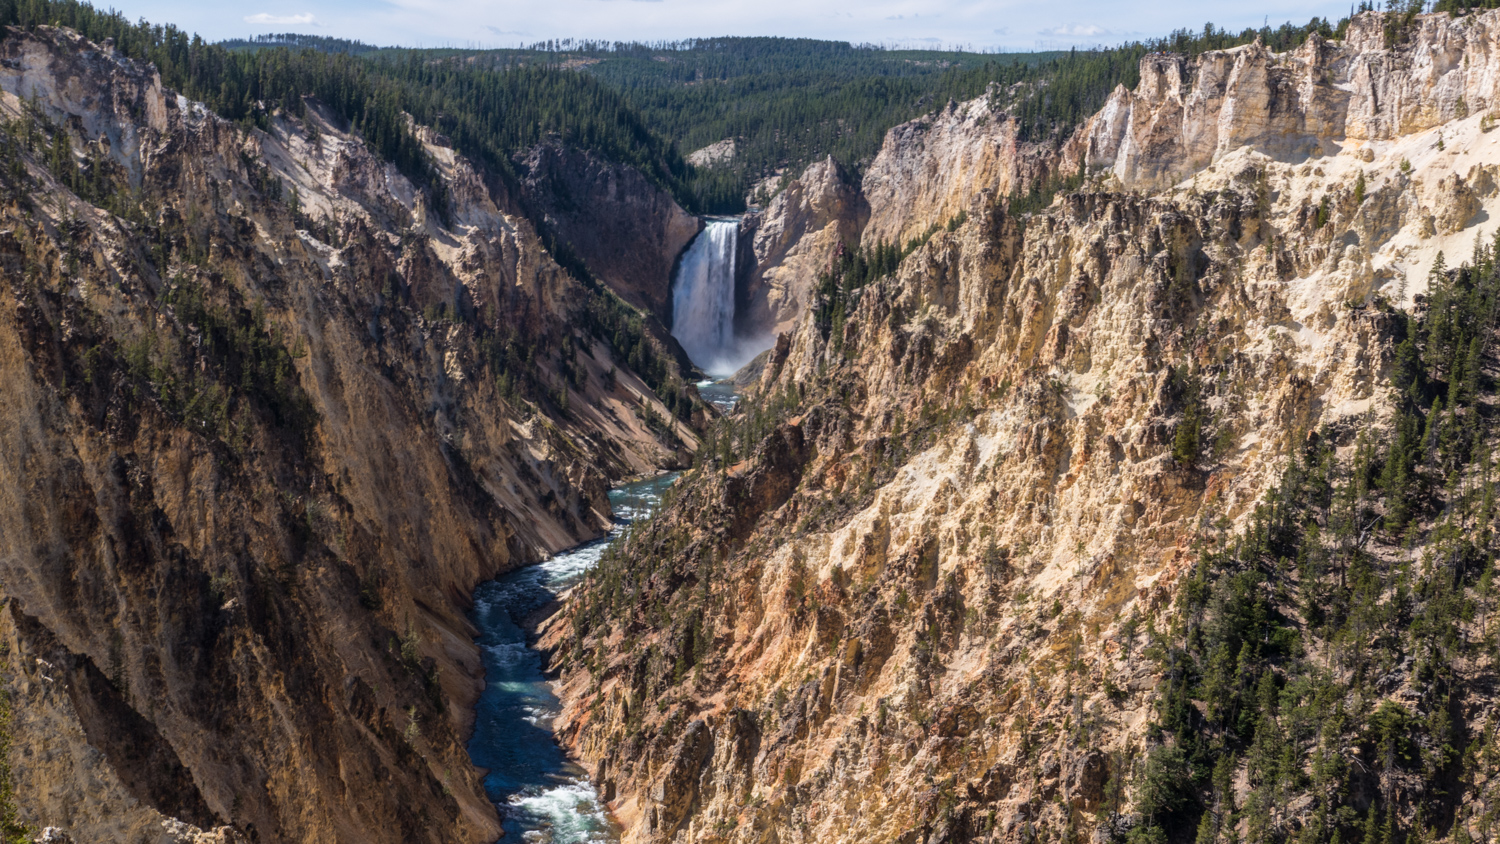 Grand Canyon of the Yellowstone and the Lower Falls